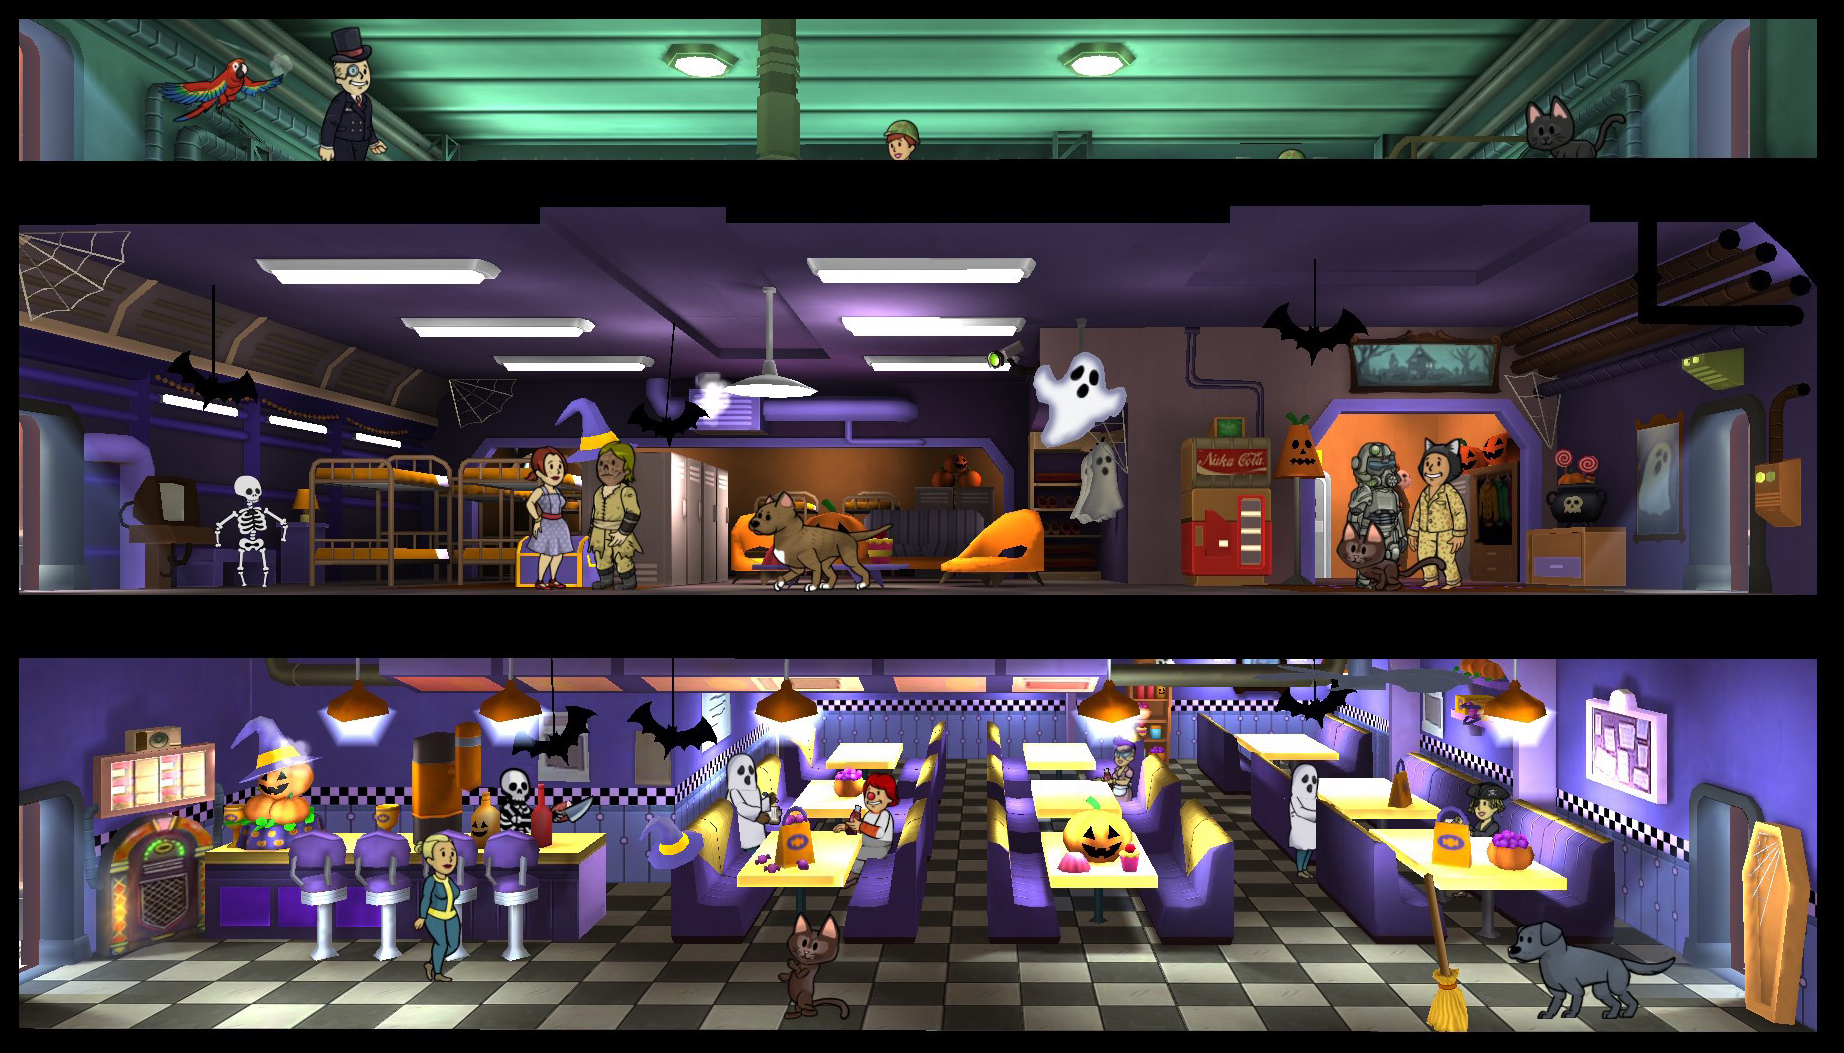 Fallout Shelter Halloween Update 2020 Fallout Shelter update adds faction themes, holiday celebrations